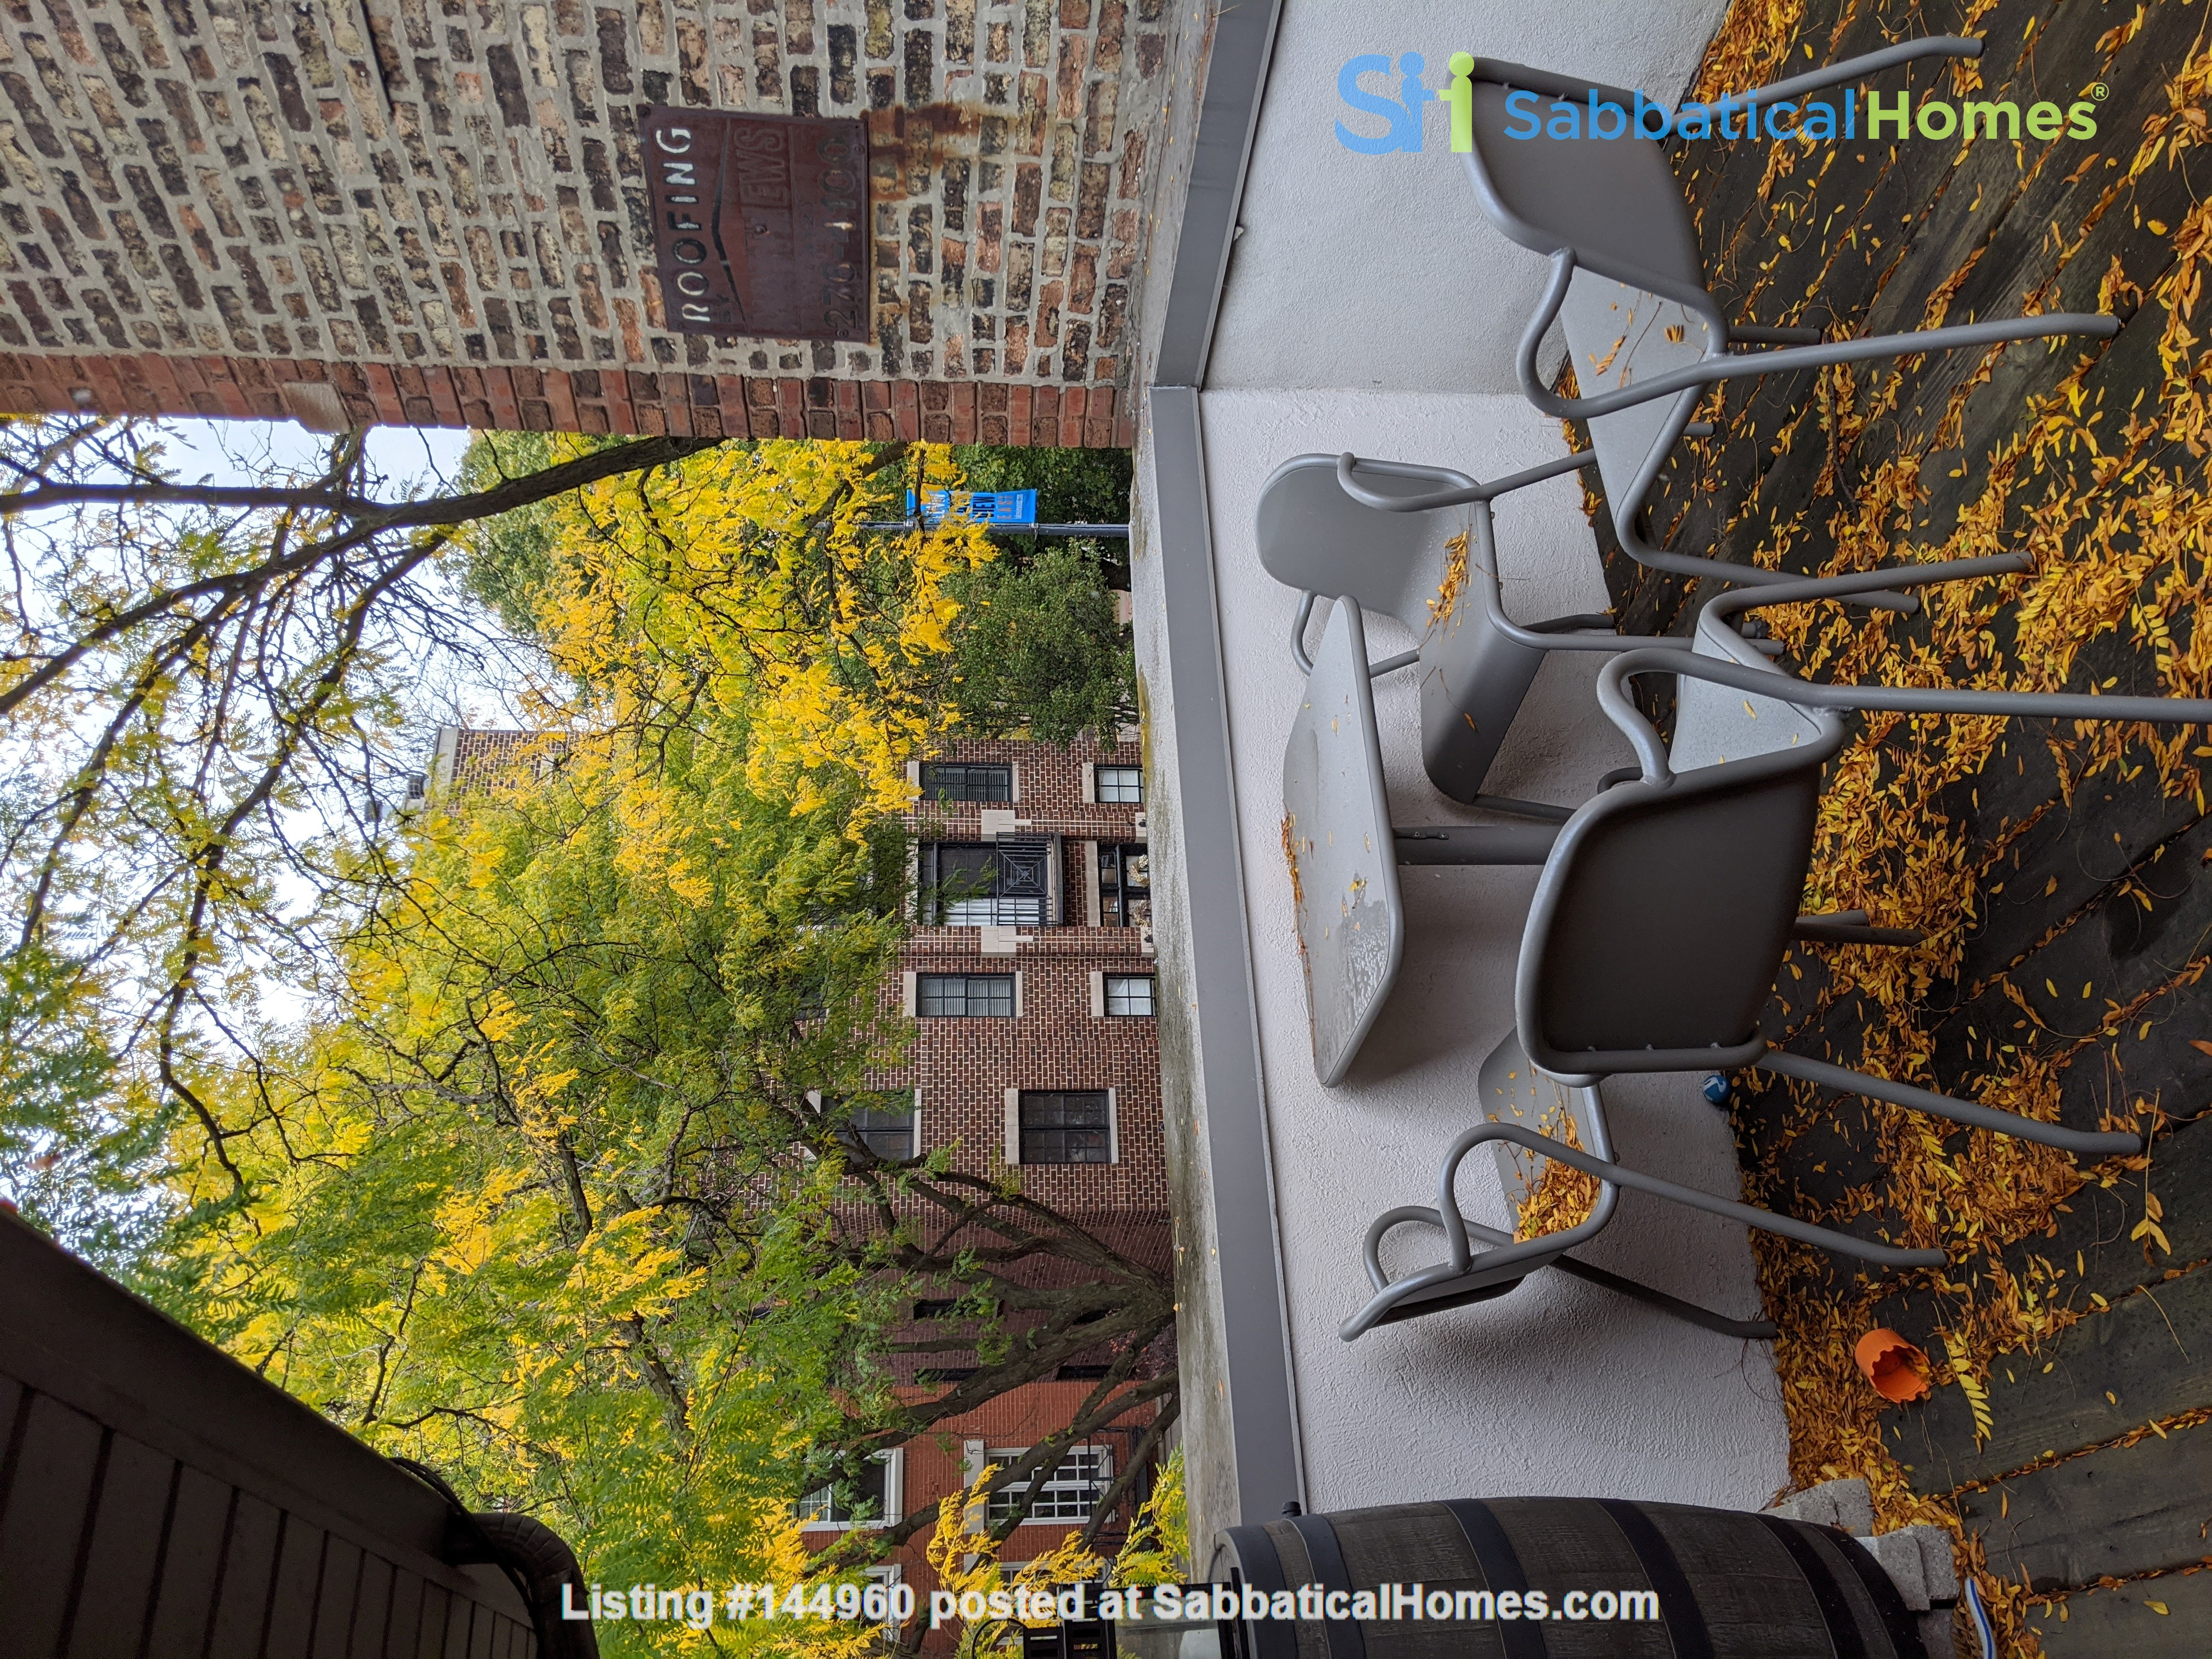 Spacious, fully furnished 3 bd/2.5 ba townhome in Lincoln Park Home Rental in Chicago, Illinois, United States 9